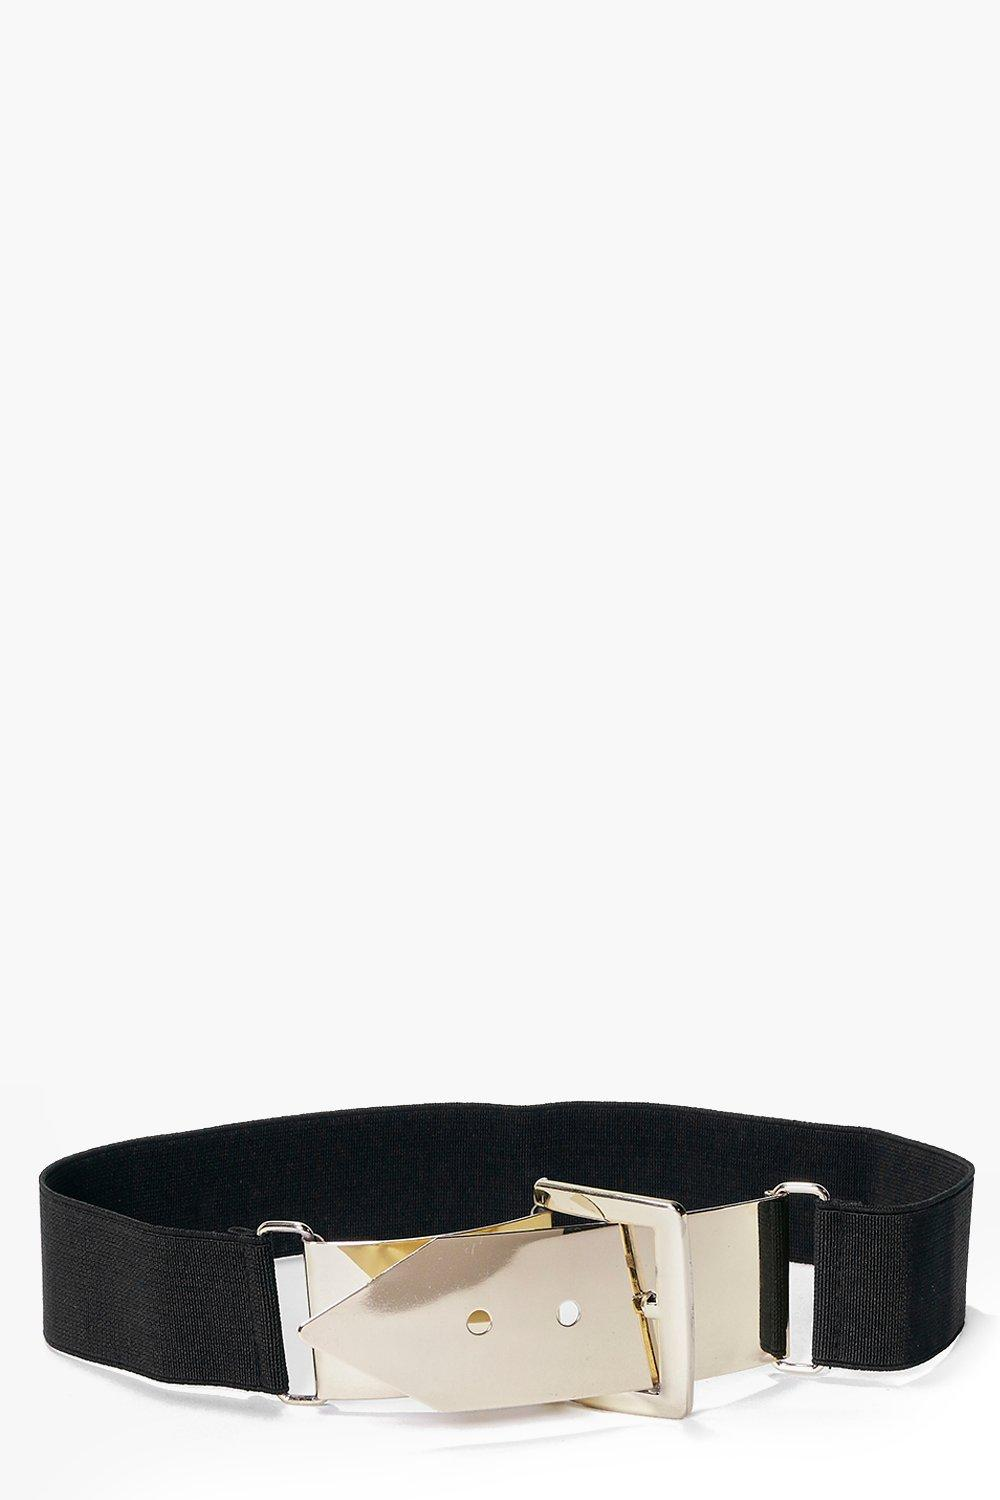 Grace Metal Plate Buckle Waist Belt